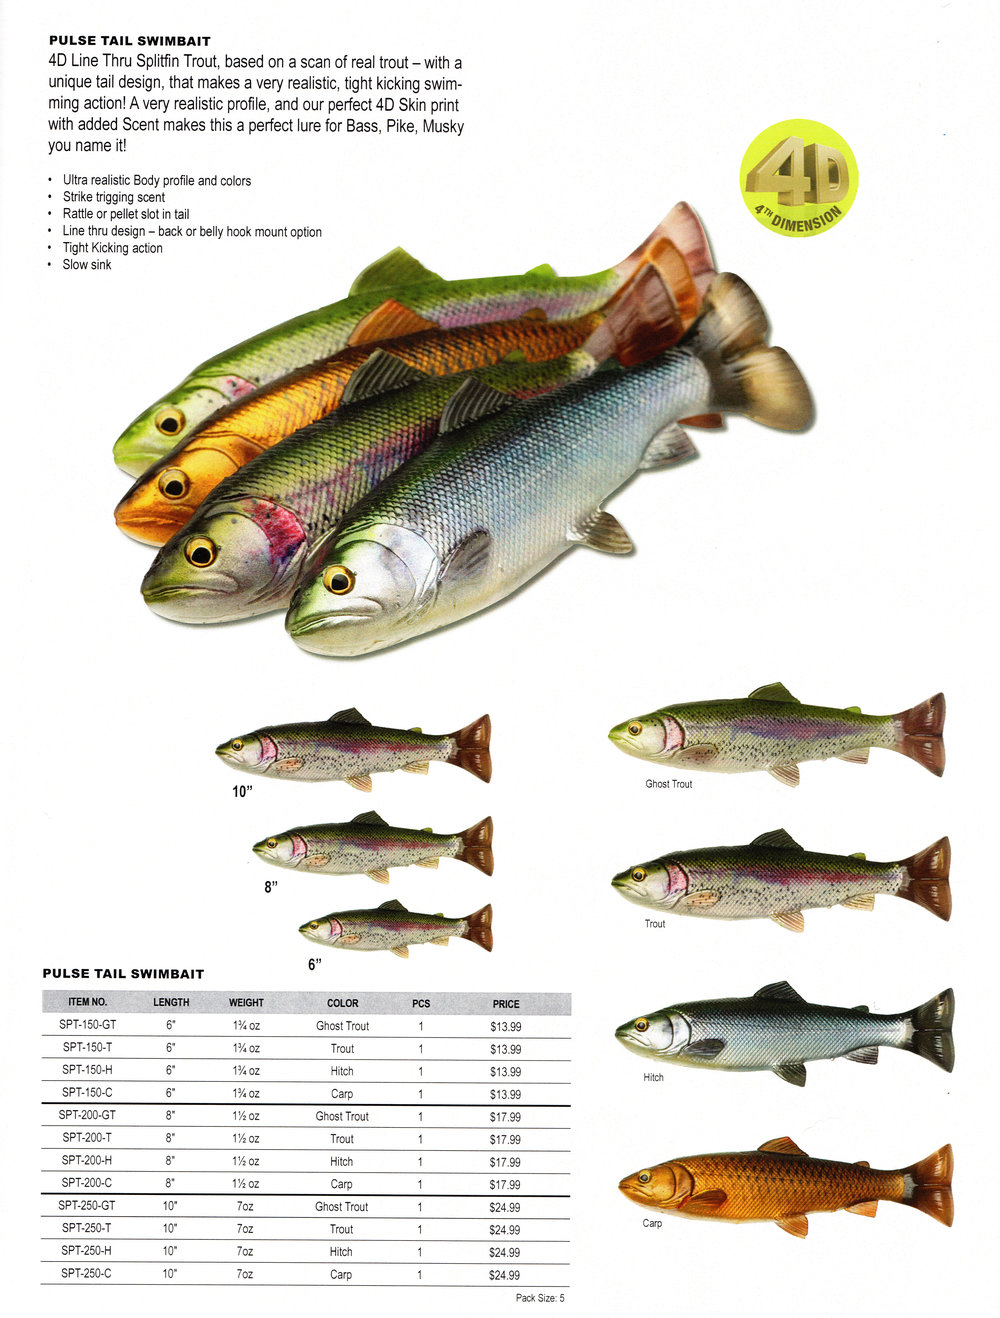 Pulse Tail Swimbait 1.jpg